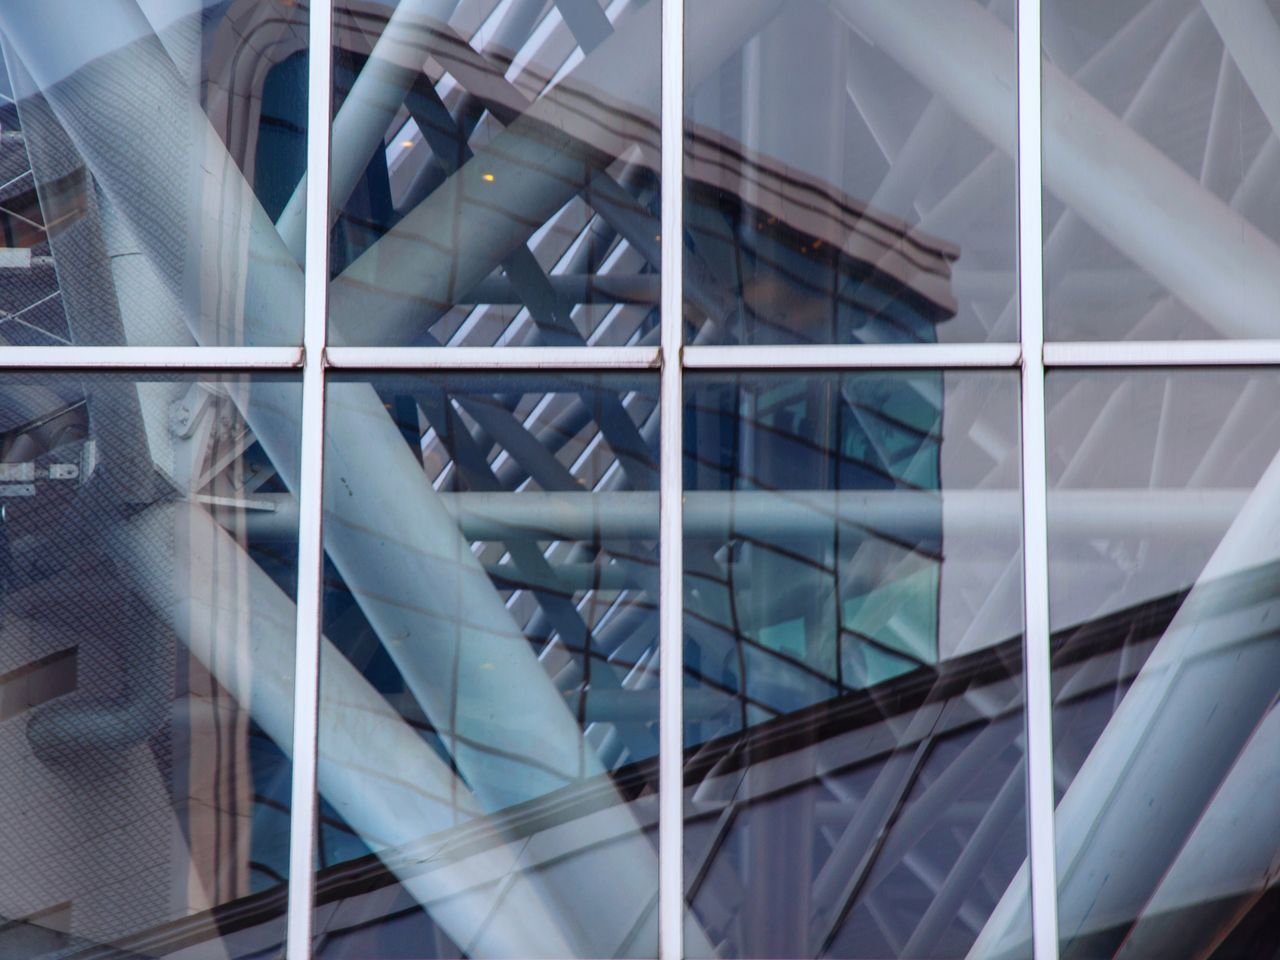 - Reflection & construction - Pattern Architecture Modern Built Structure Close-up Reflection Sky Office Building Exterior Mirror Window Nikon Nikonphotography Amsterdam Amsterdam Rai Skyscape Office Block Cloud - Sky Low Angle View Glass Construction